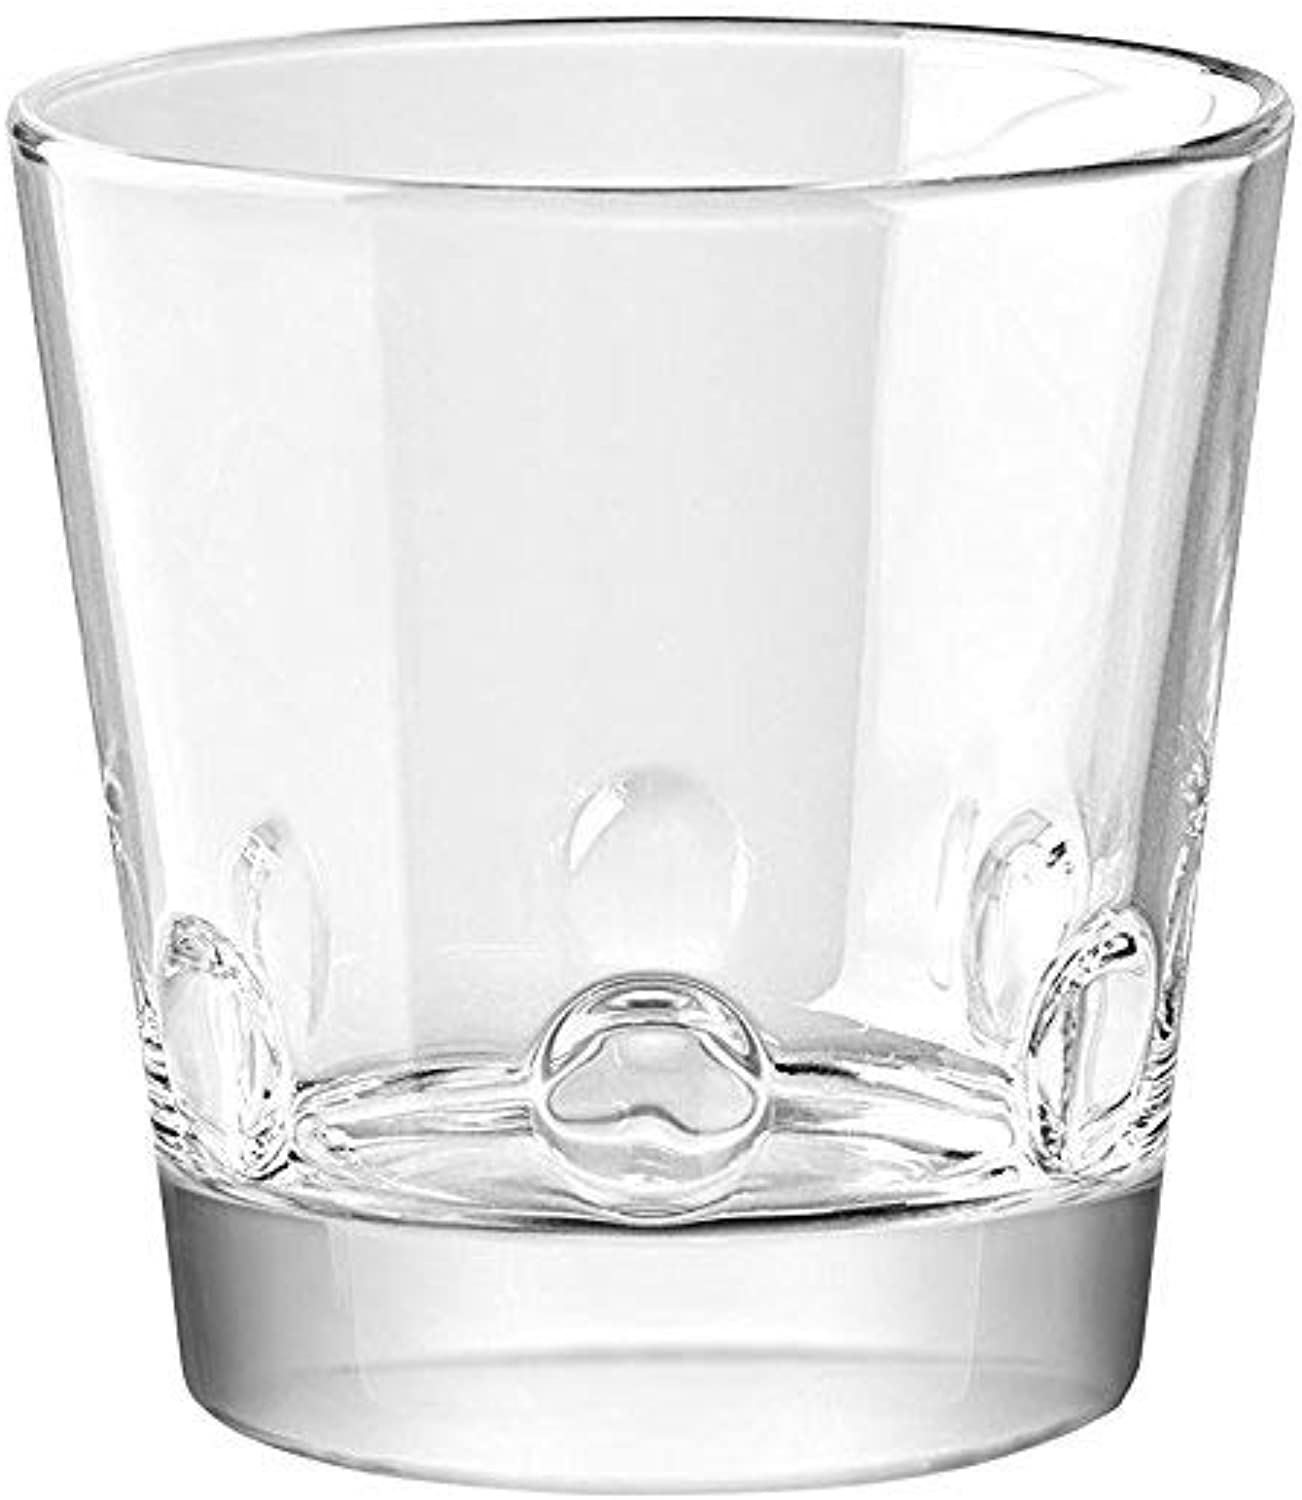 Barski European Glass - Double Old Fashioned Tumbler Glasses - Uniquely Designed - Stackable - Won't Get Stuck - Set of 6 - 12 oz. - Made in Europe